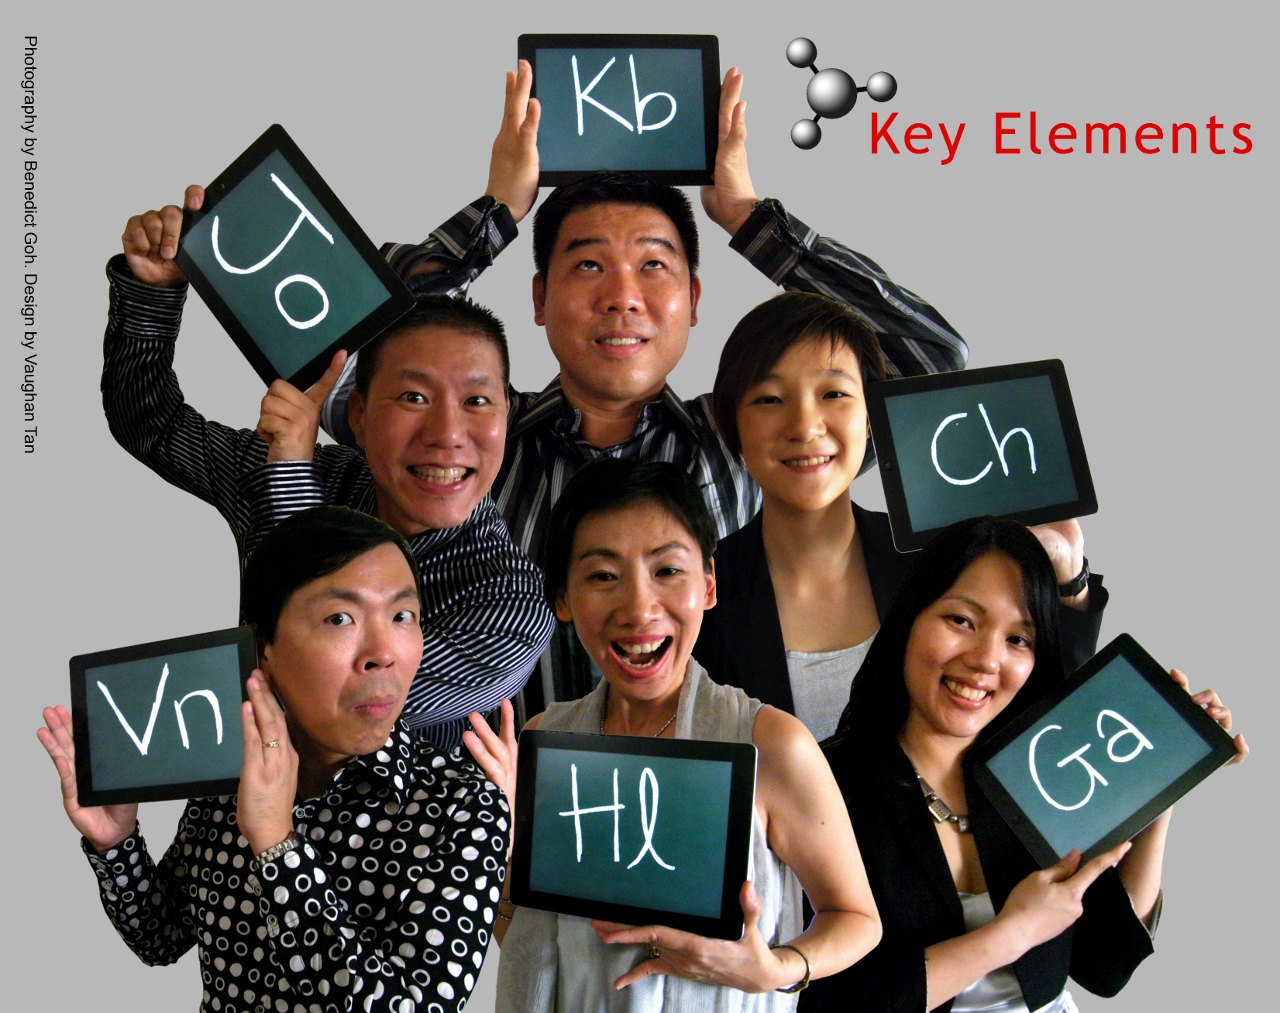 Key Elements (Musical group)